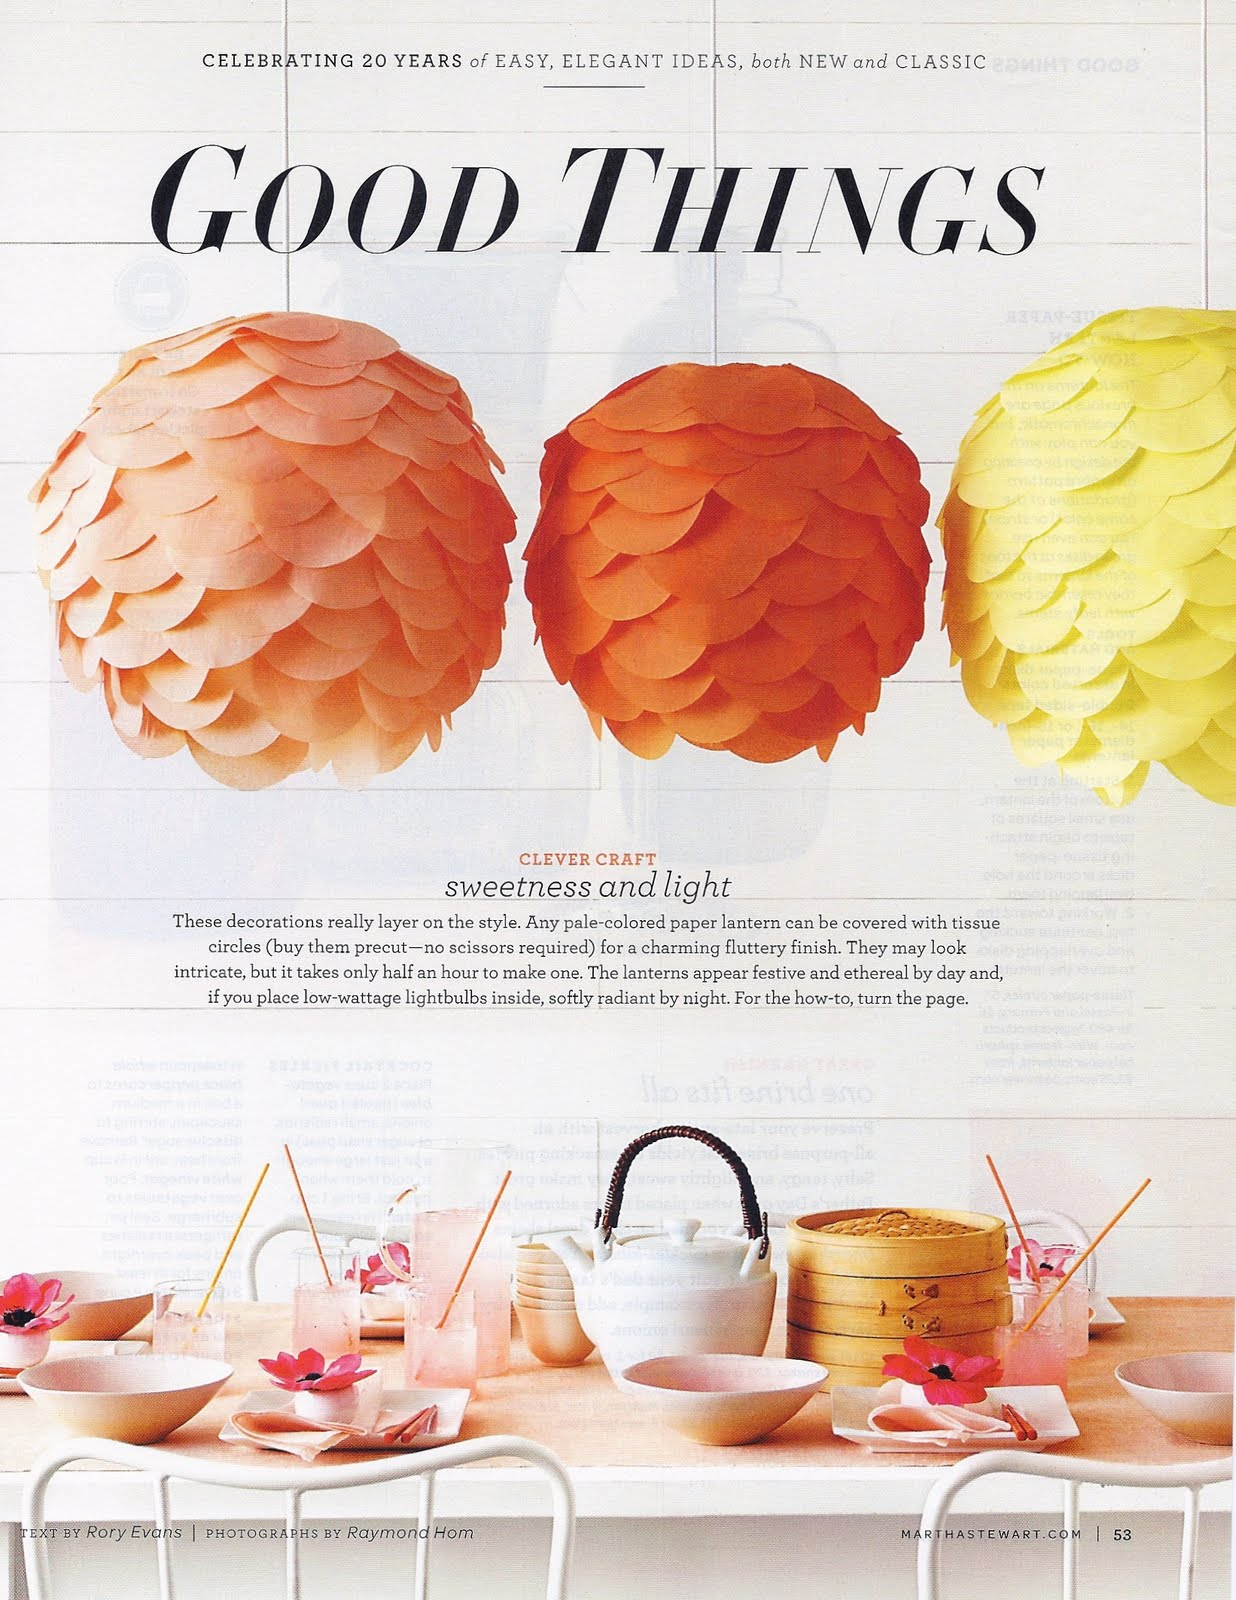 Lovelygirls weddings events diy tissue paper lantern diy tissue paper lantern martha stewart mightylinksfo